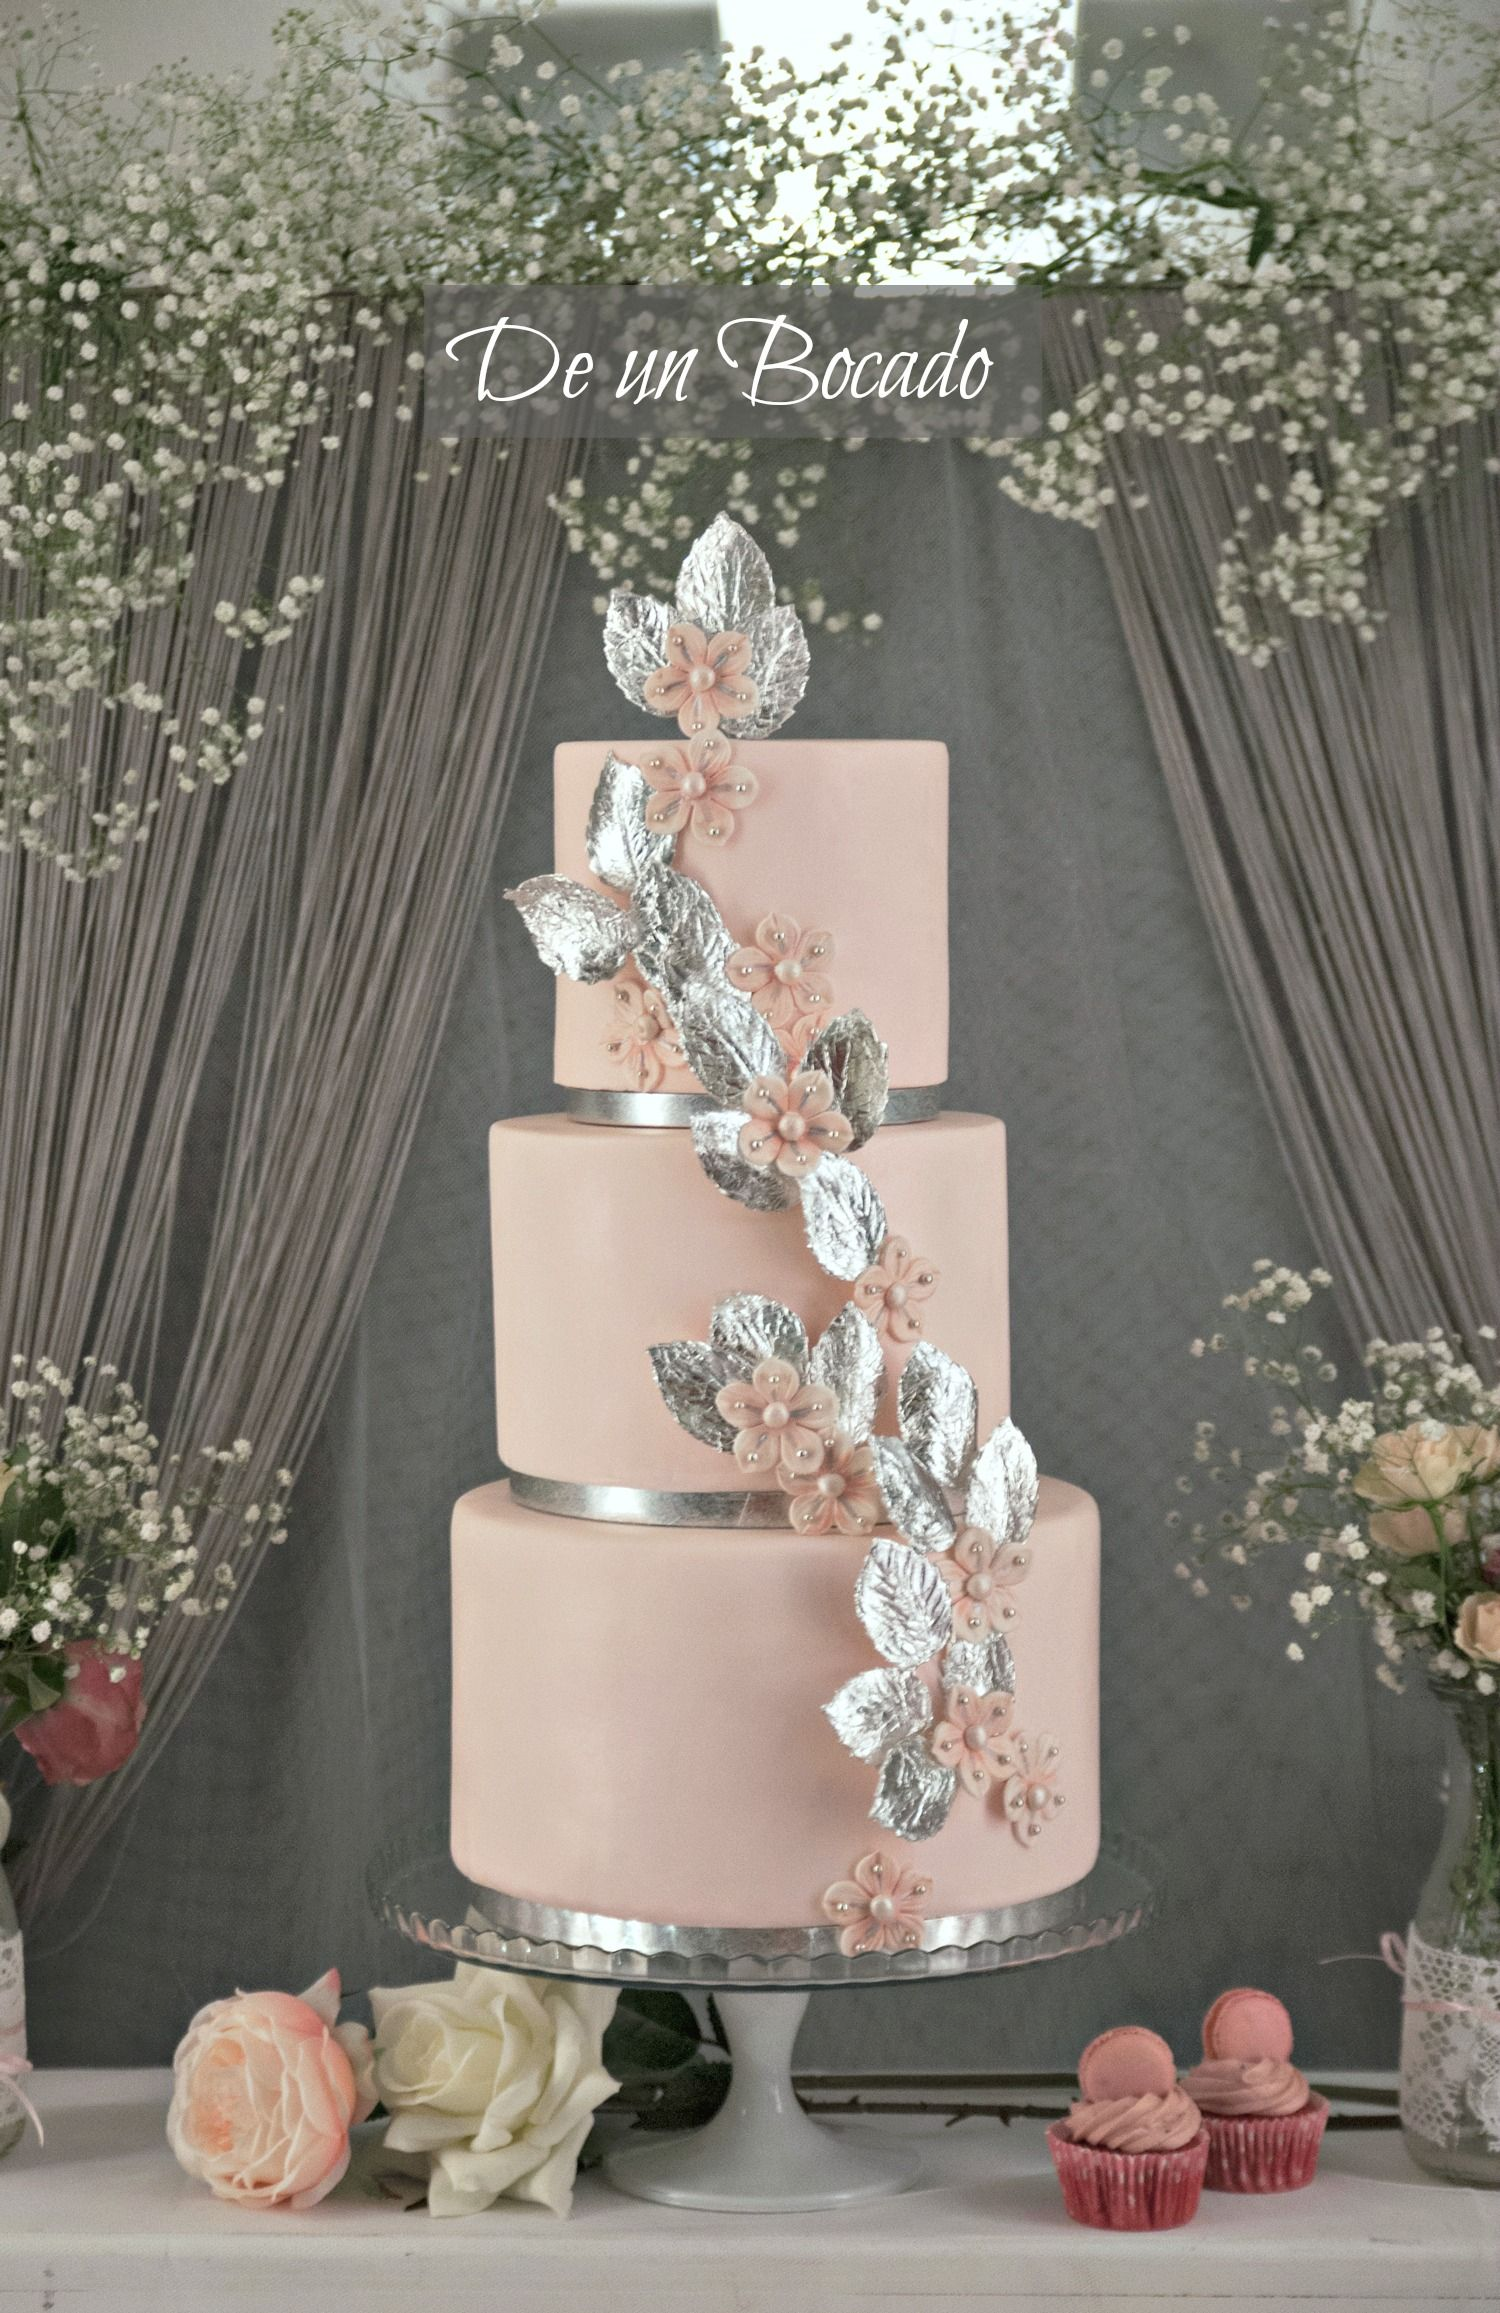 Romantic and chic wedding cake inspired on the brideus shoes bag